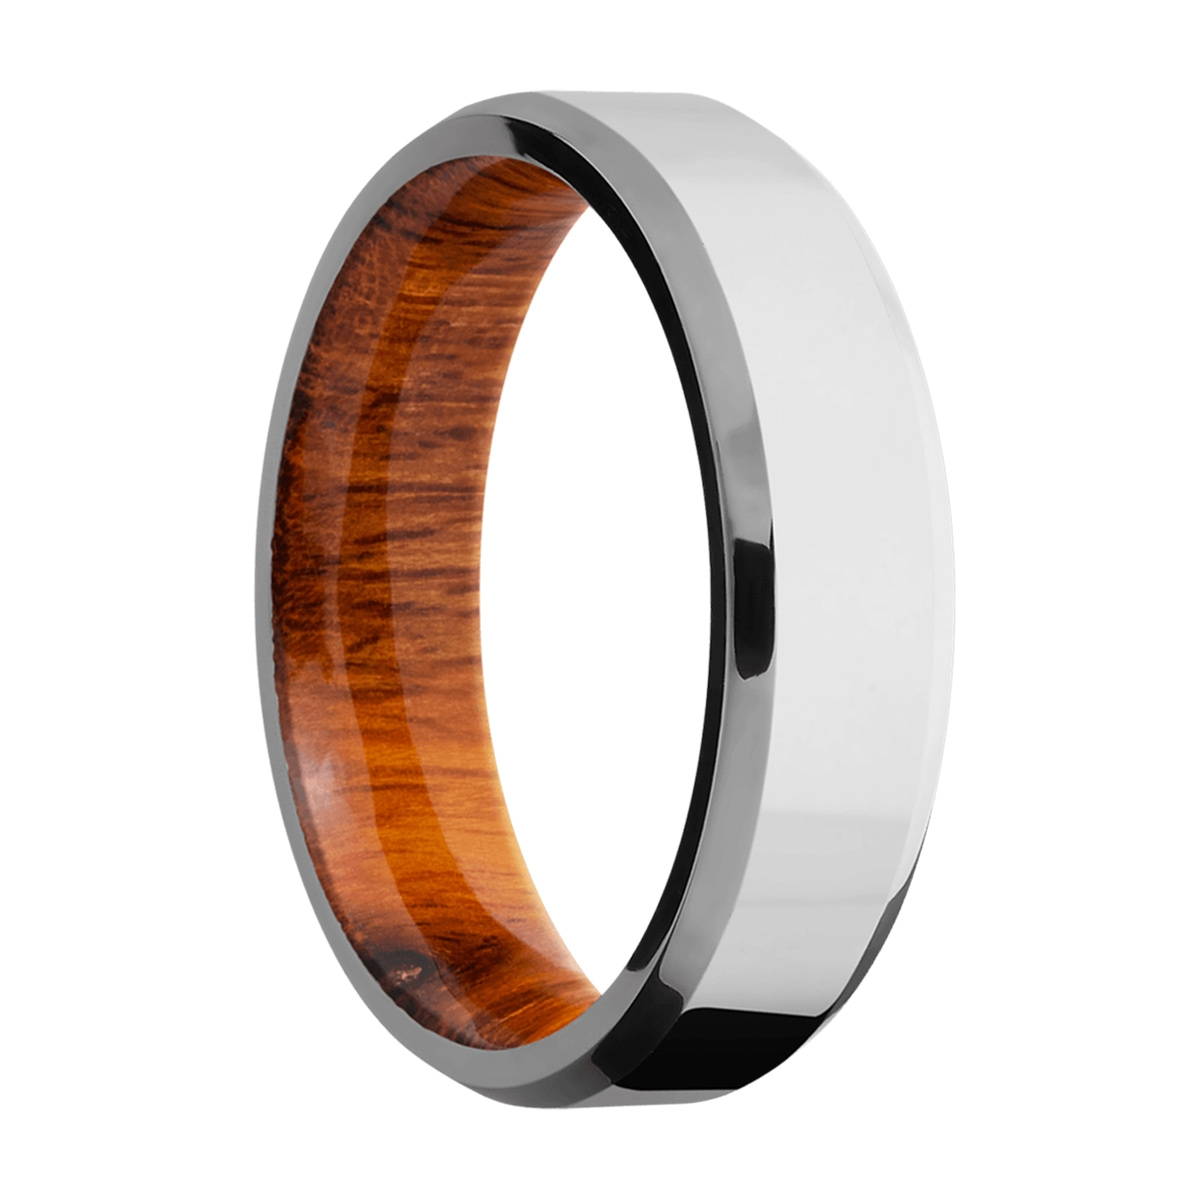 Lashbrook HWSLEEVECC6B Cobalt Chrome and Hardwood Wedding Ring or Band Alternative View 1